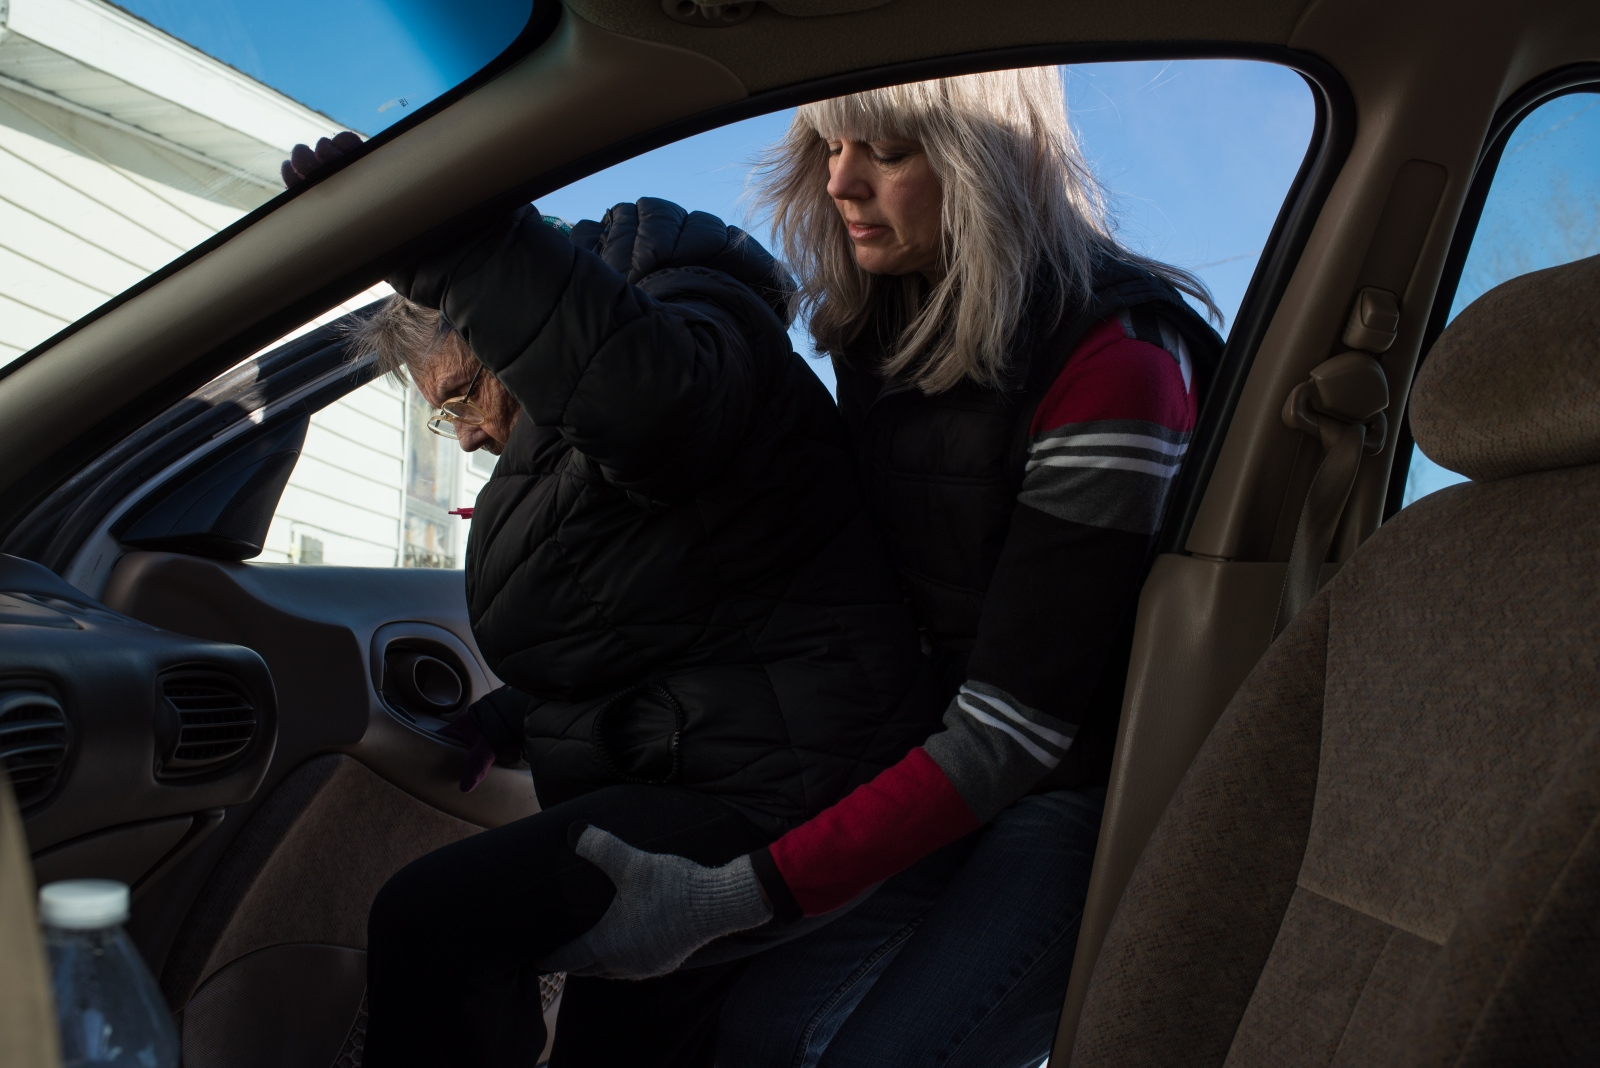 Roxanne Rupe, who serves as Coolville's librarian and is one of the most active members of the community, helps her mother-in-law, Mary Rupe, into Roxanne's vehicle in February 2015.Mary will spend the day with her son so that she won;t be alone at her own house.